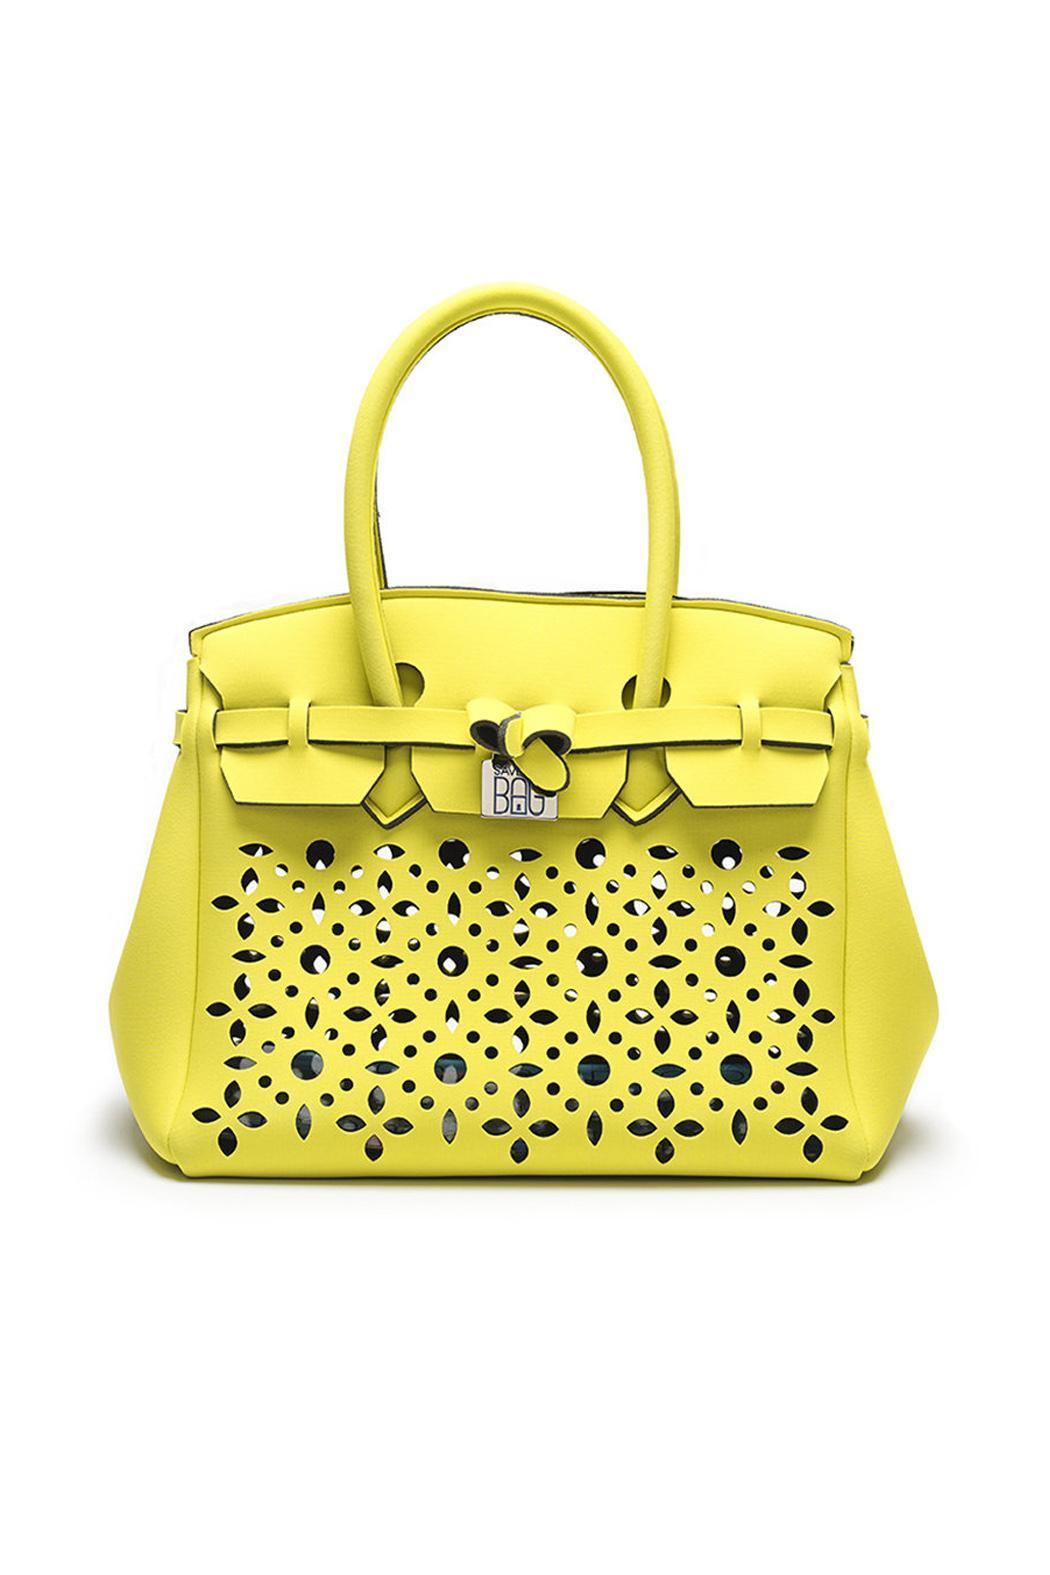 Save My Bag Neoprene Perforated Handbag Front Cropped Image